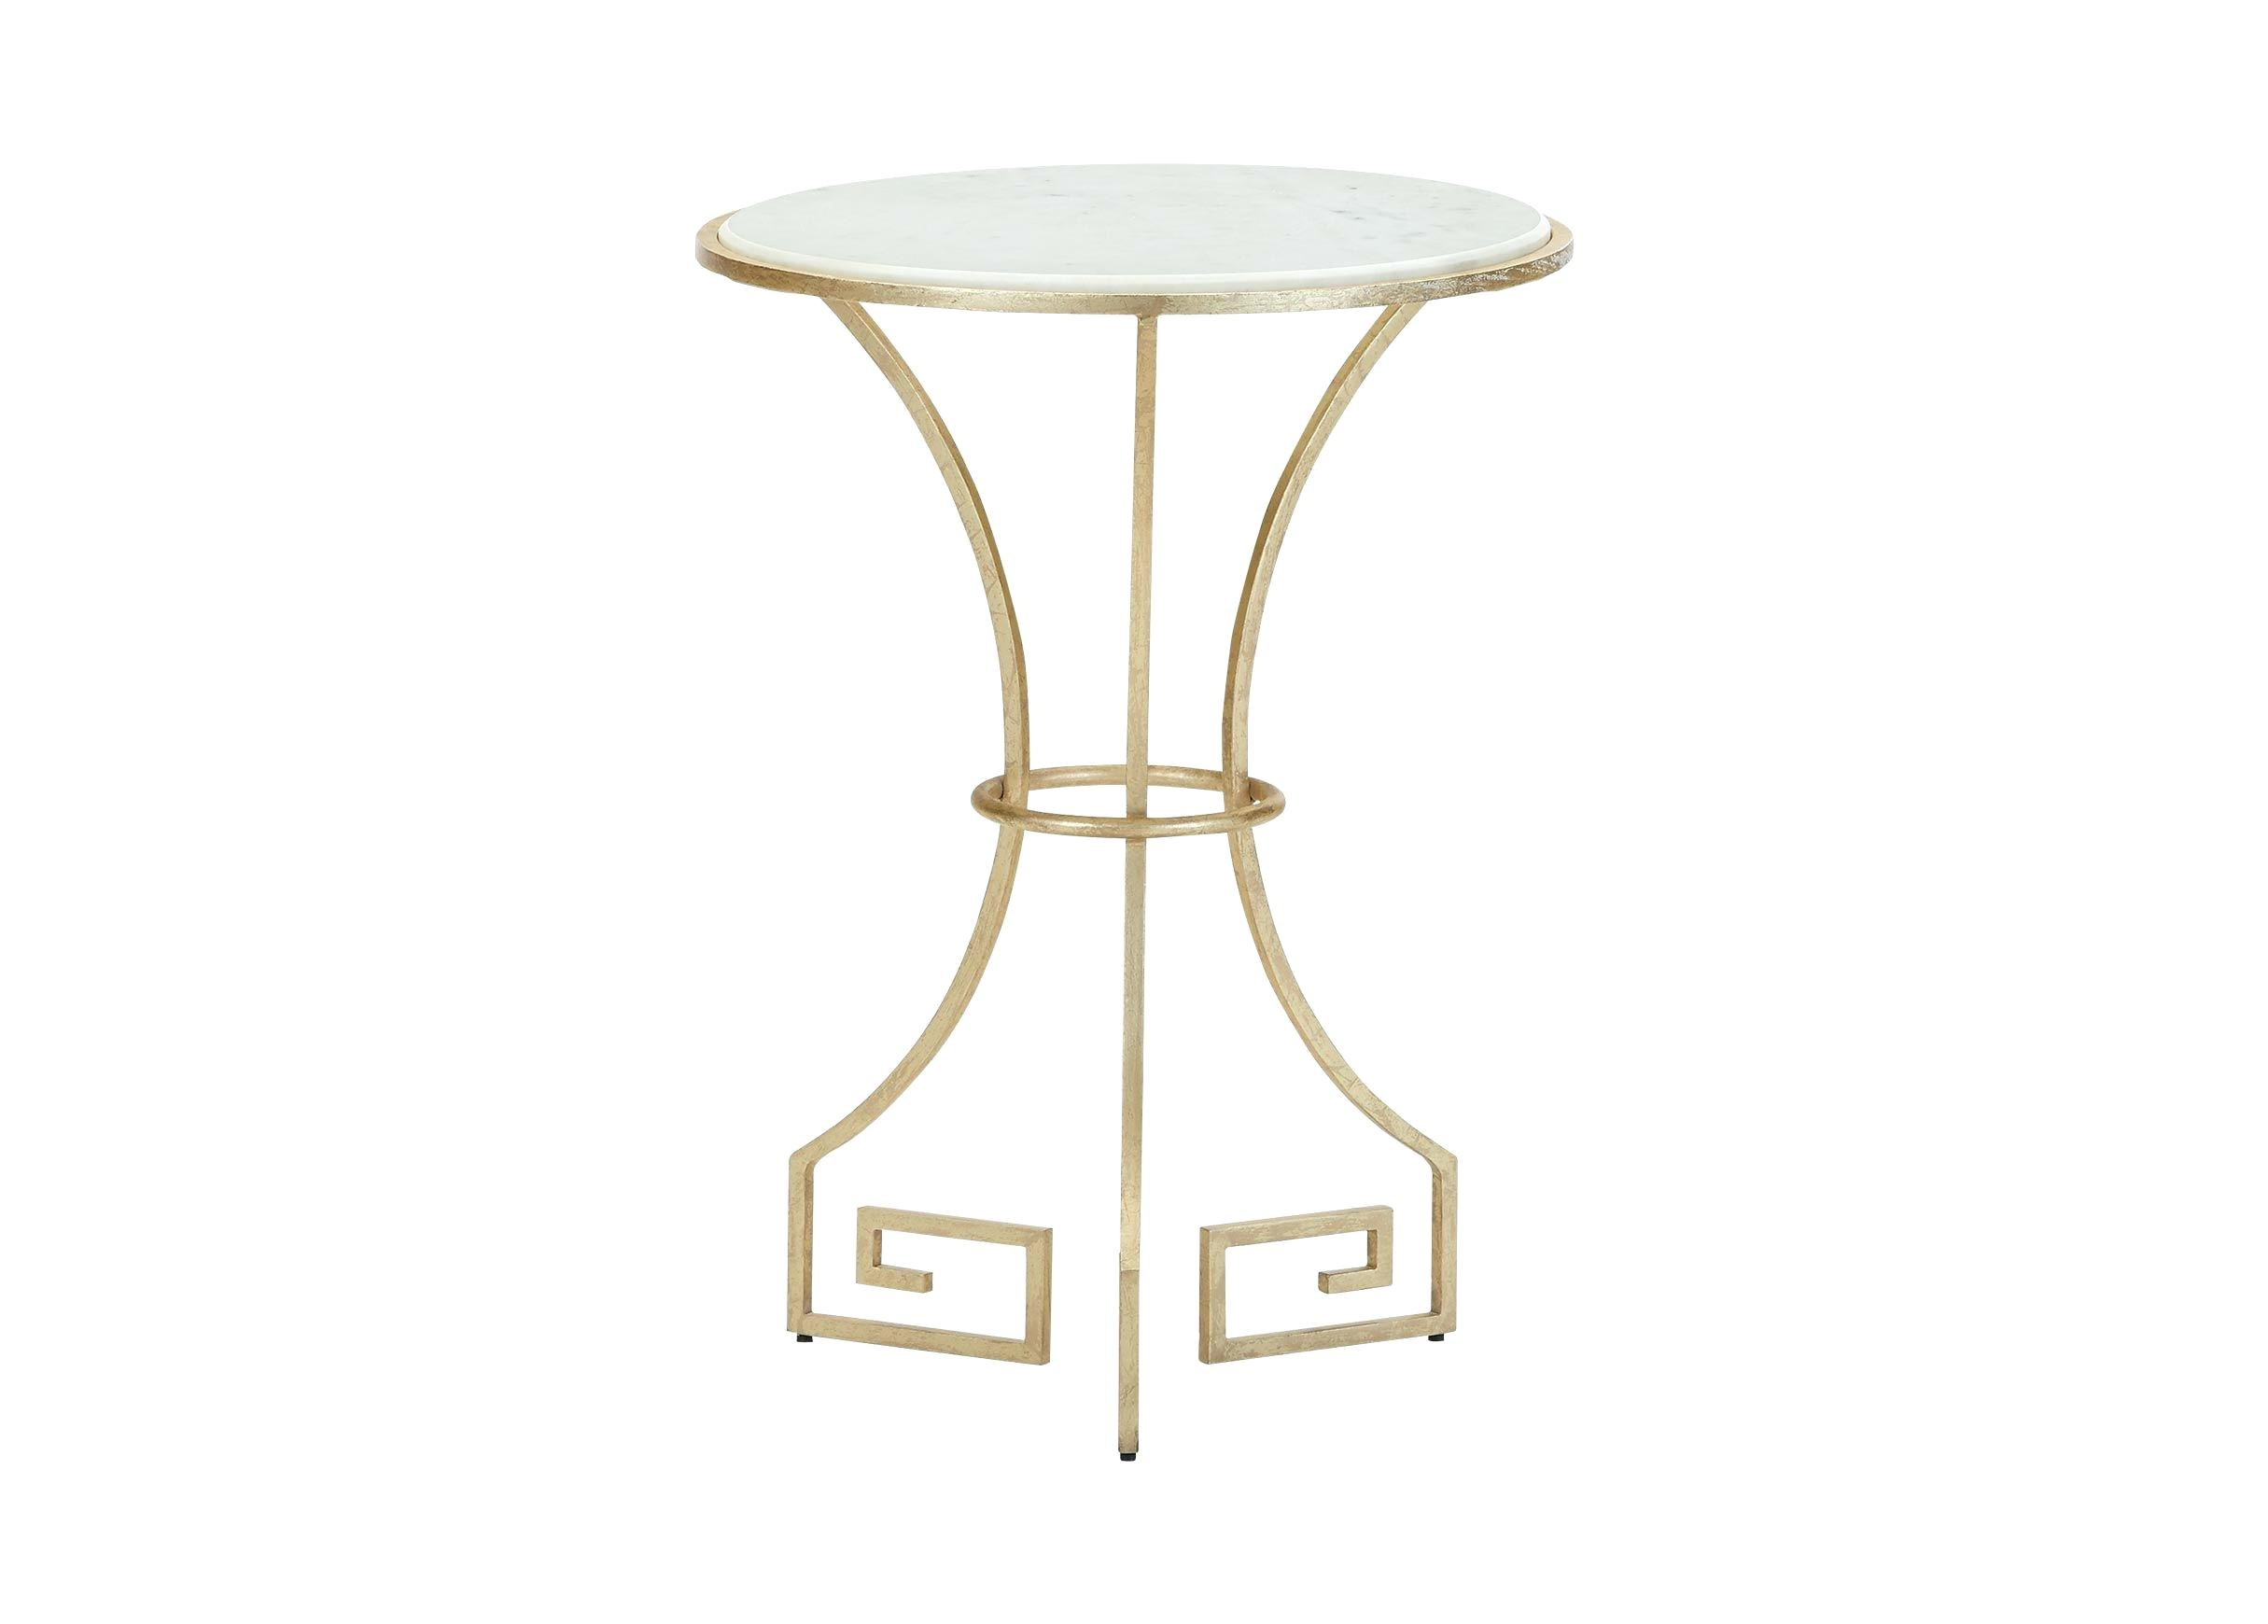 metal tray accent table round folding details about small stand side willow key marble top kitchen appealing full size french pottery barn glass dining farmhouse seats timberline